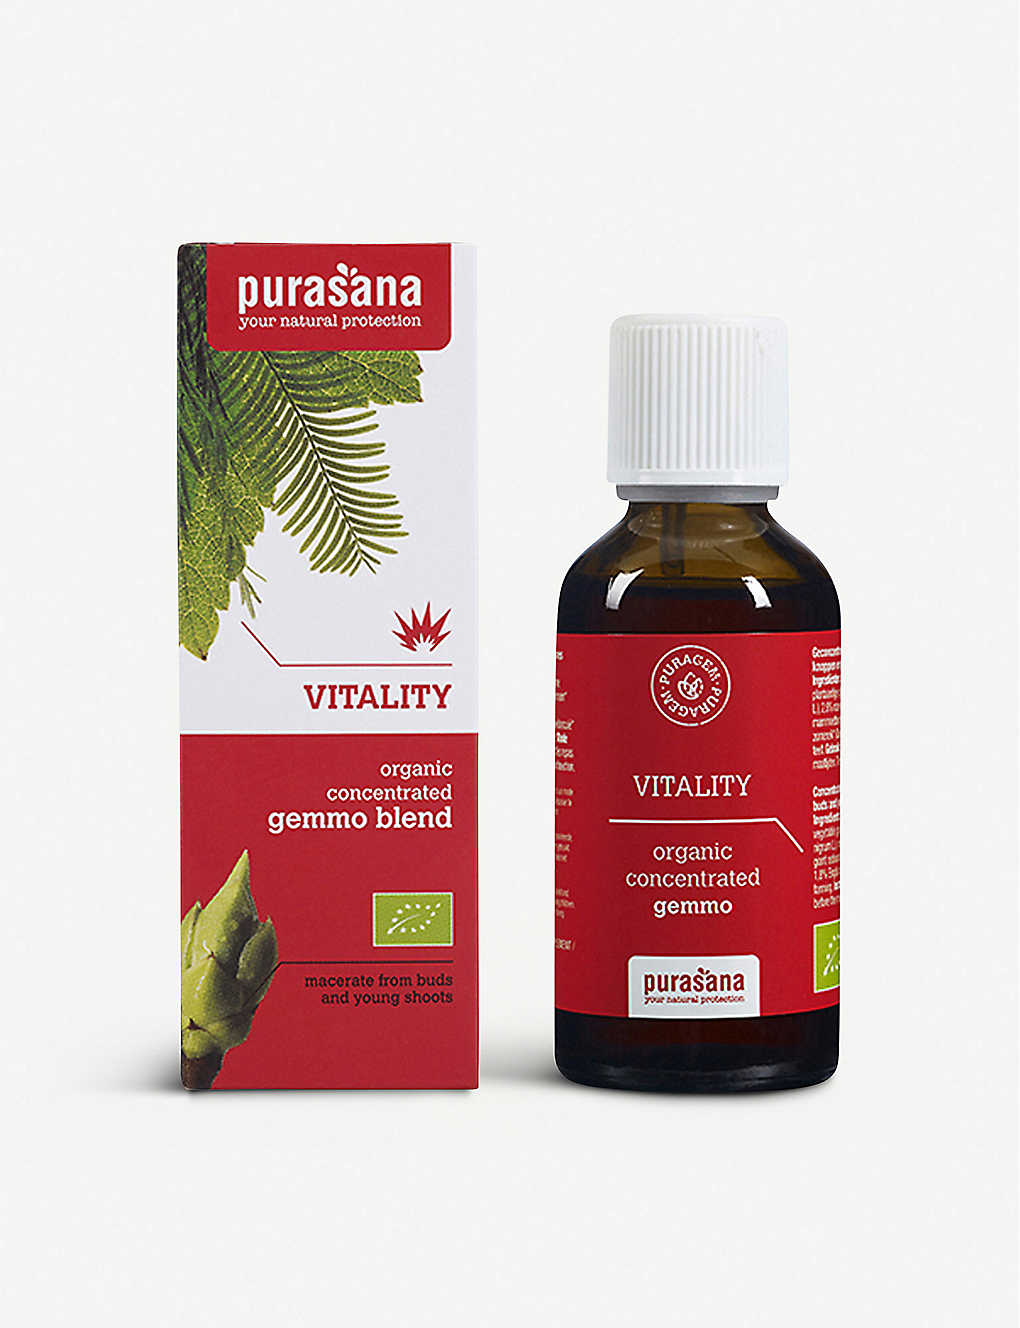 PURASANA: Puragem Vitality organic concentrated gemmo 50ml